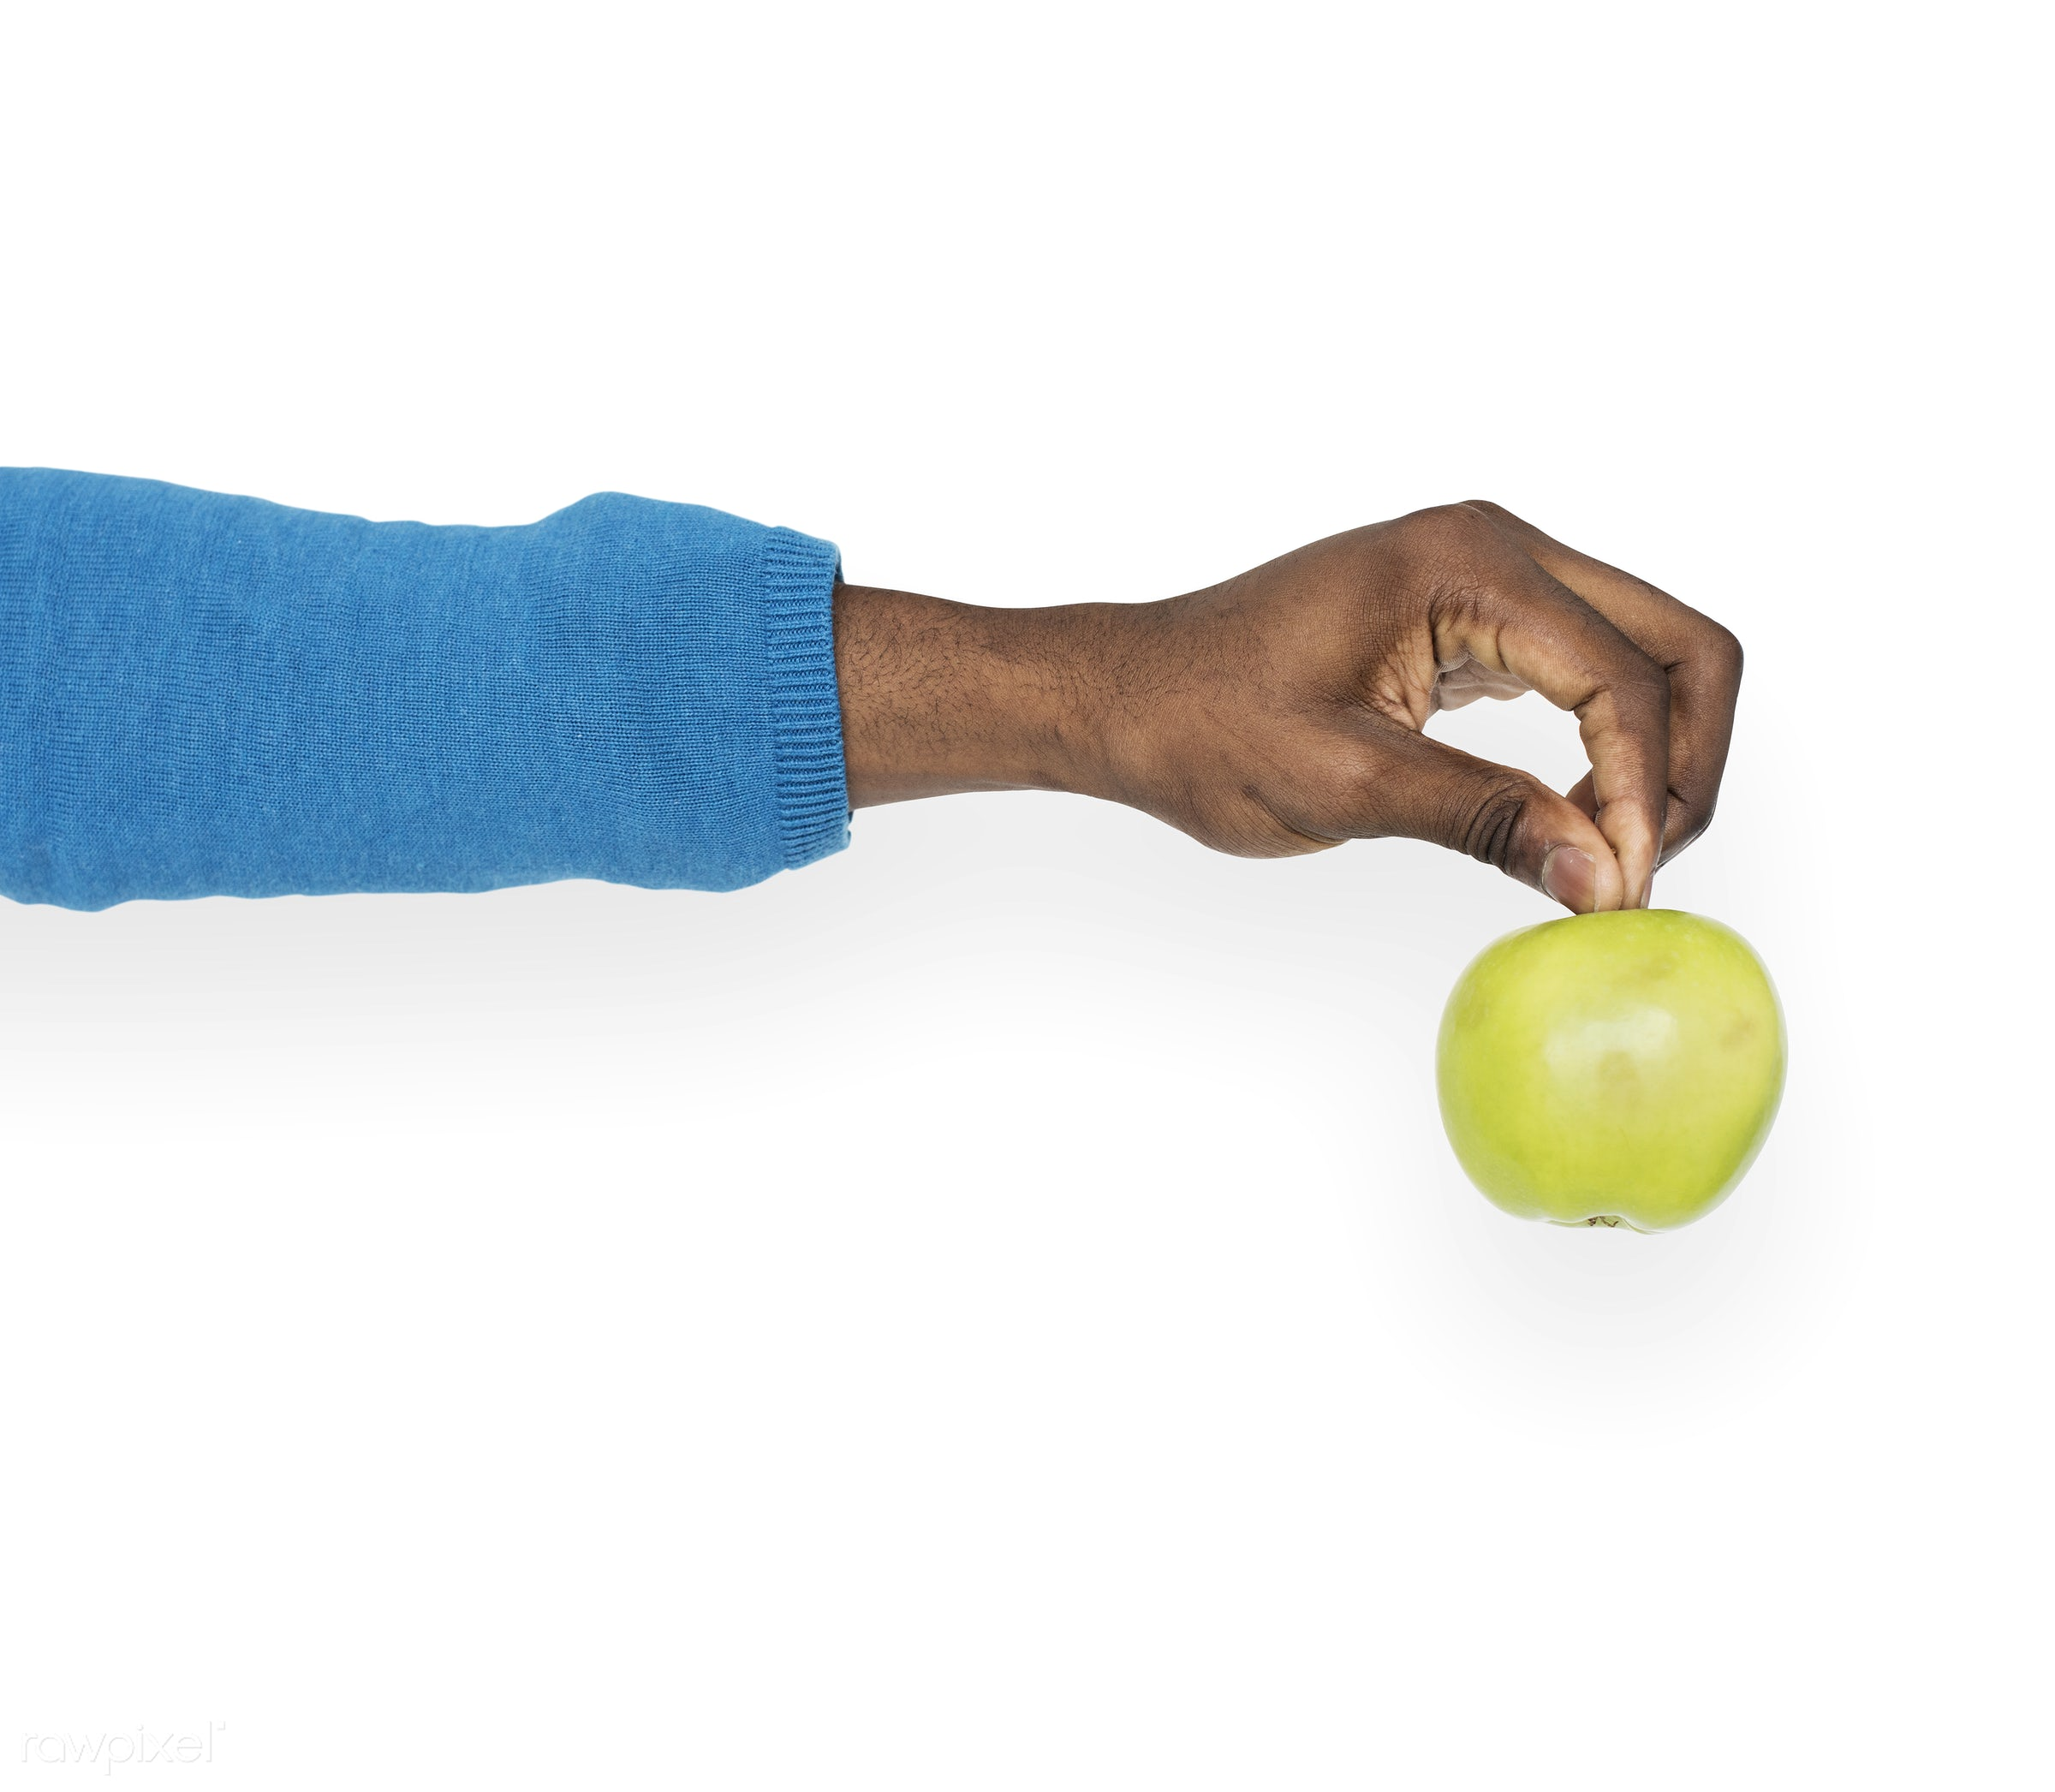 person, diet, isolated on white, race, hand, nature, wellness, lifestyle, showing, isolated, fruit, african descent, gesture...